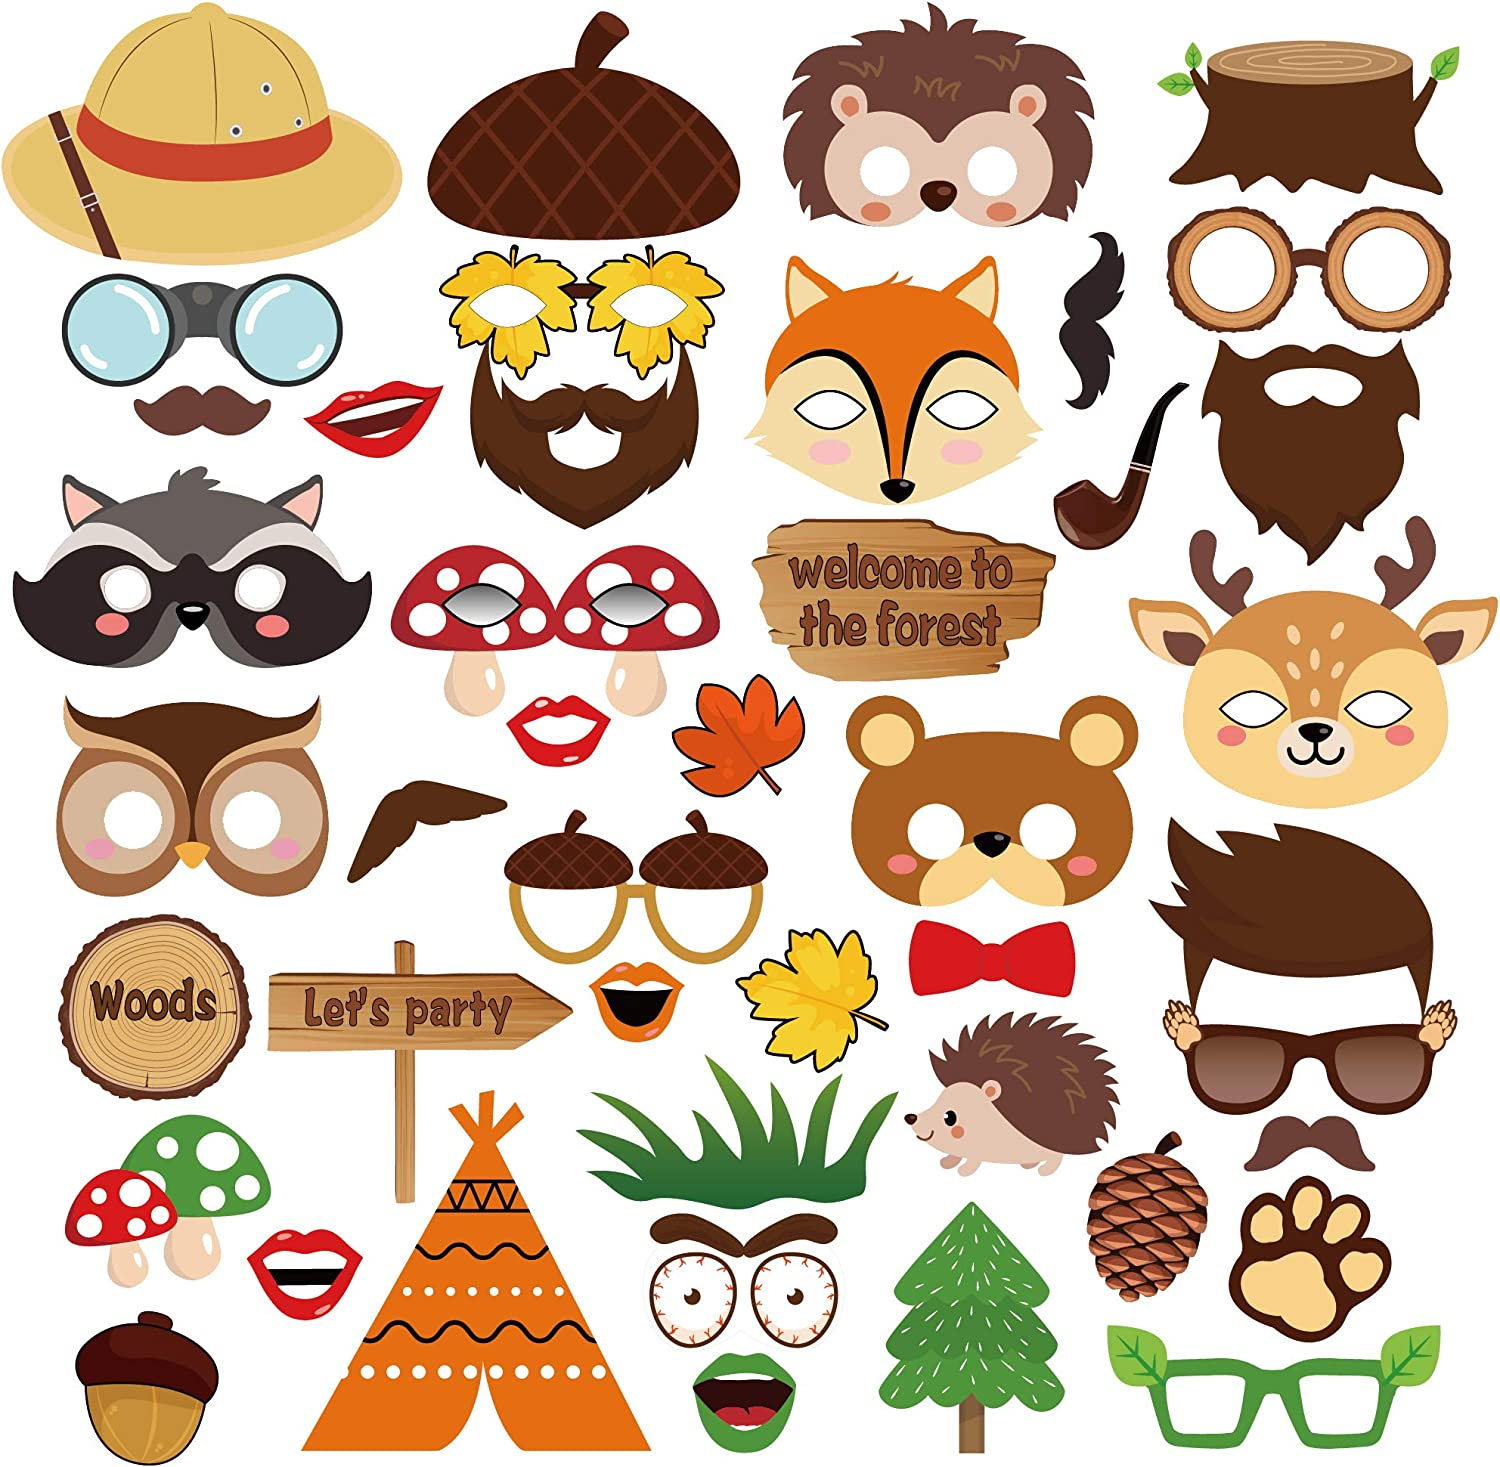 CC HOME 44CT Woodland Photo Booth Props,Forest Friend Animal Party Supplies for Boys,Girls,Wedding,Baby Shower,Forest Friend Animal Birthday Party